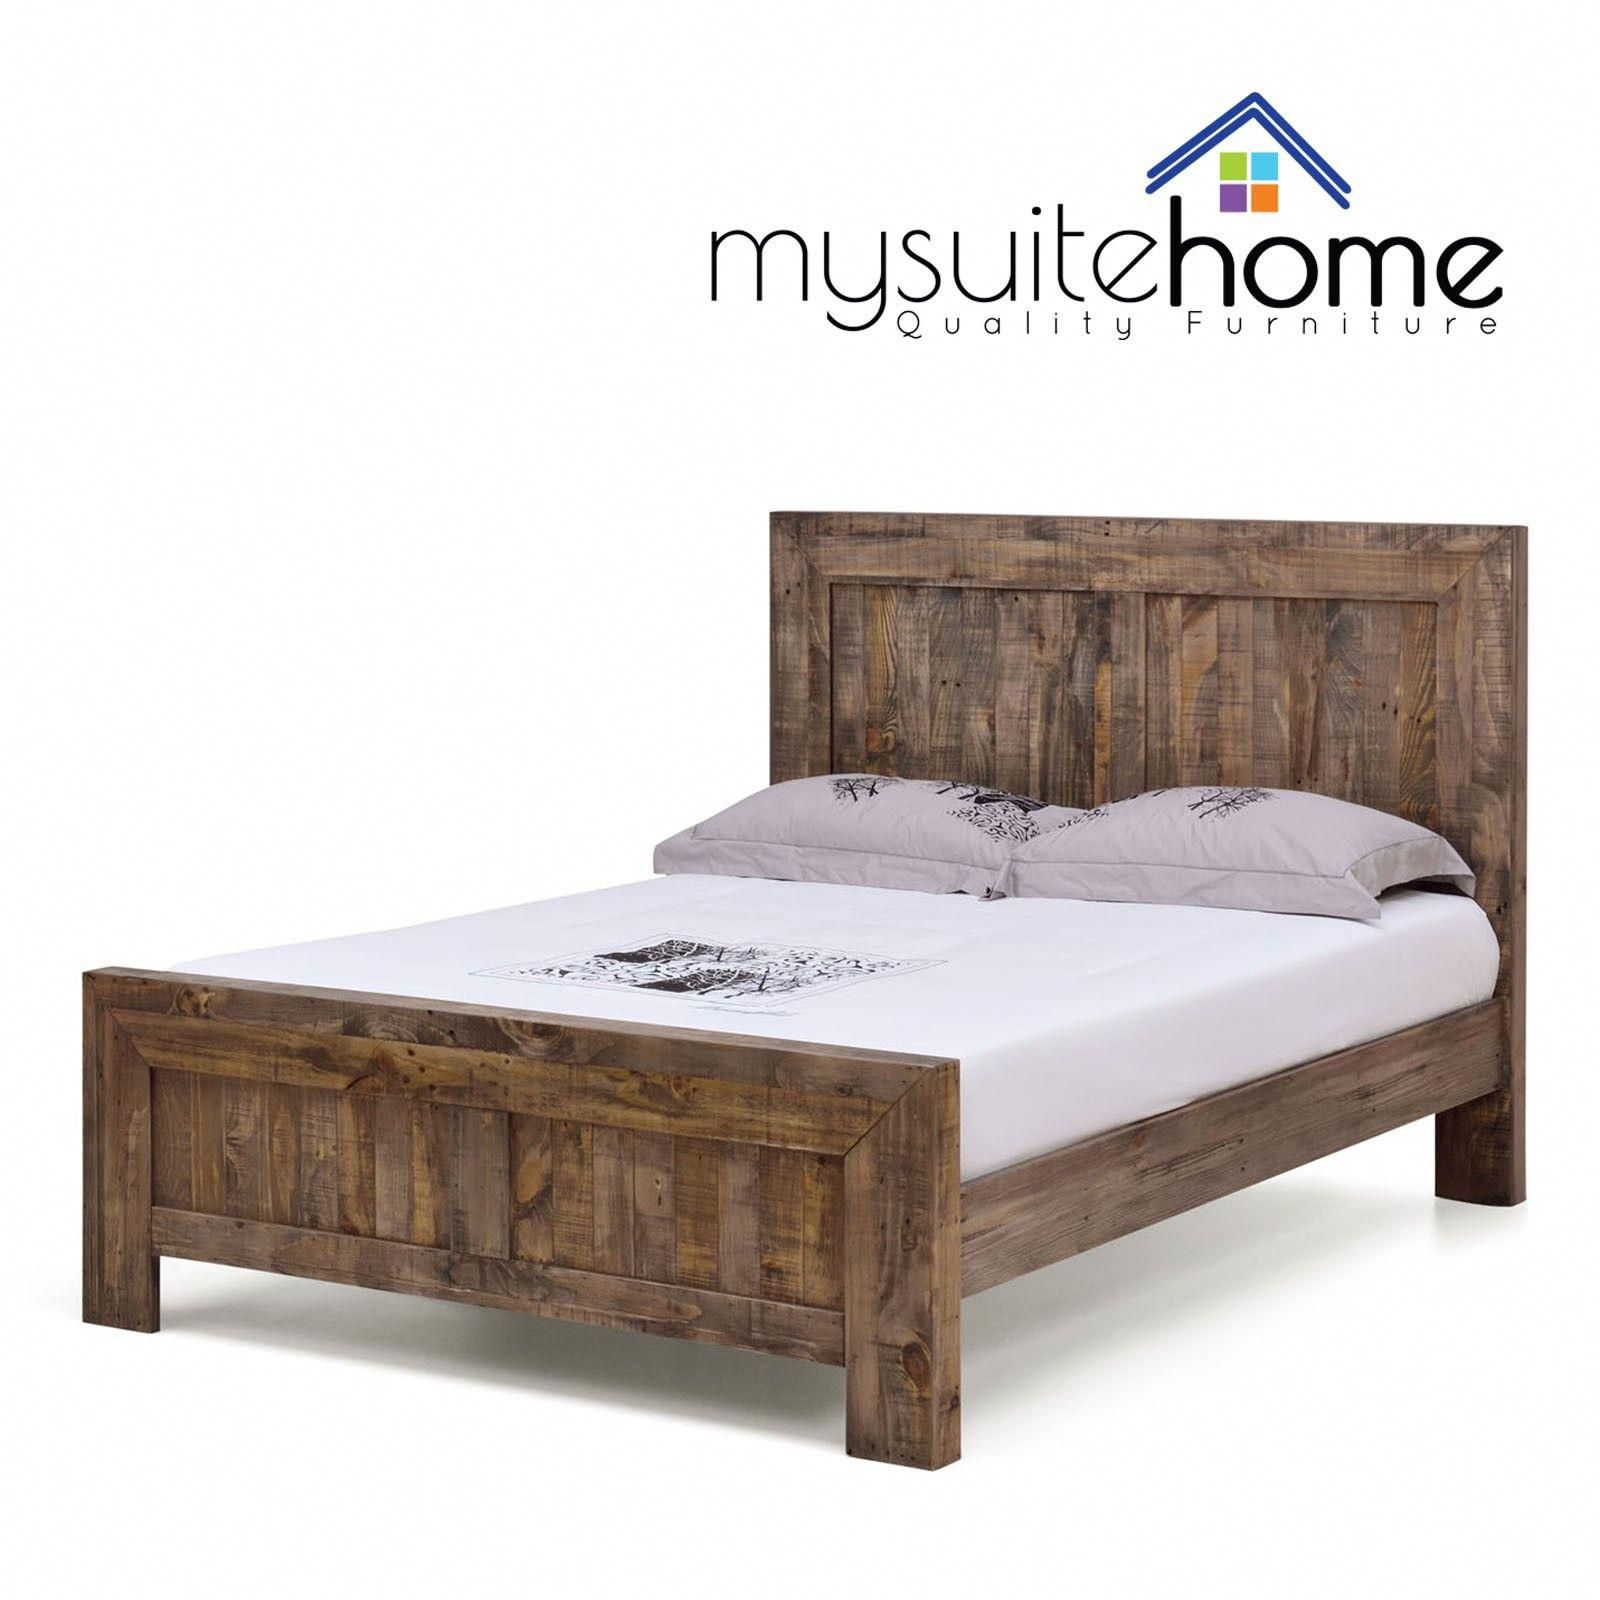 Second Hand Bed Sheets For Sale Rusticbedding Rustic Bedding